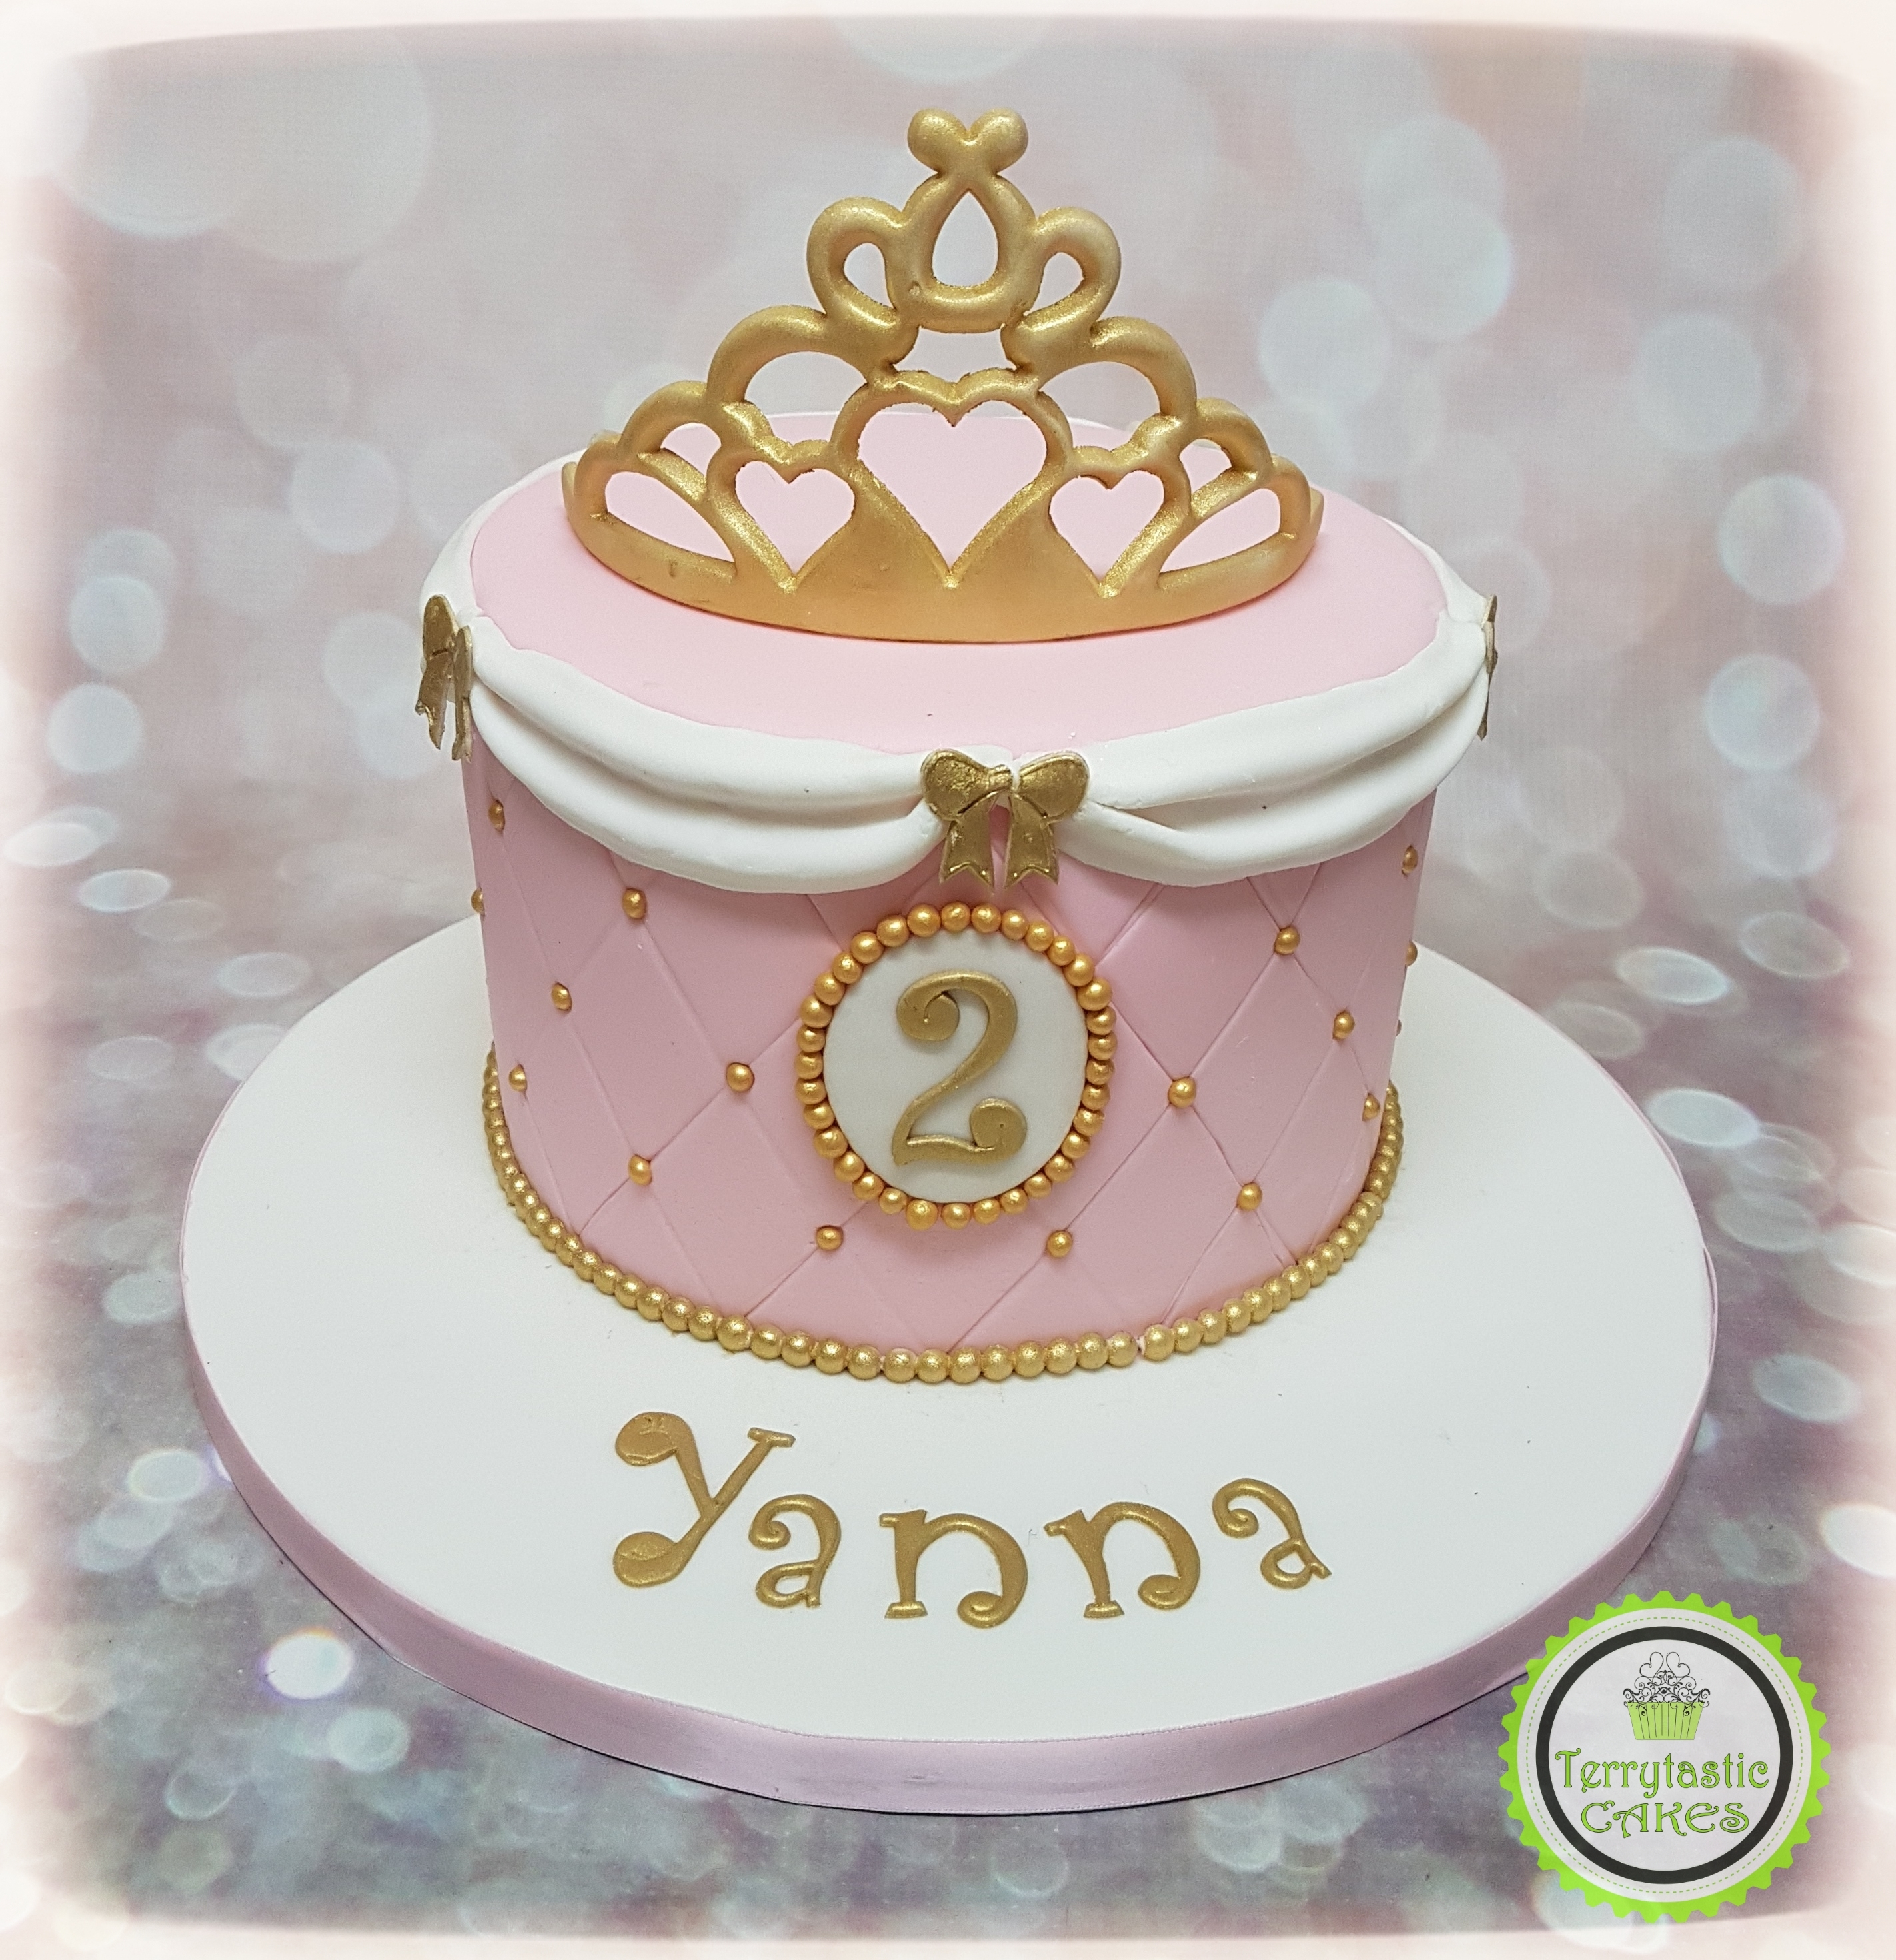 Princess Crown Birthday Cakeg Terrytastic Cakes